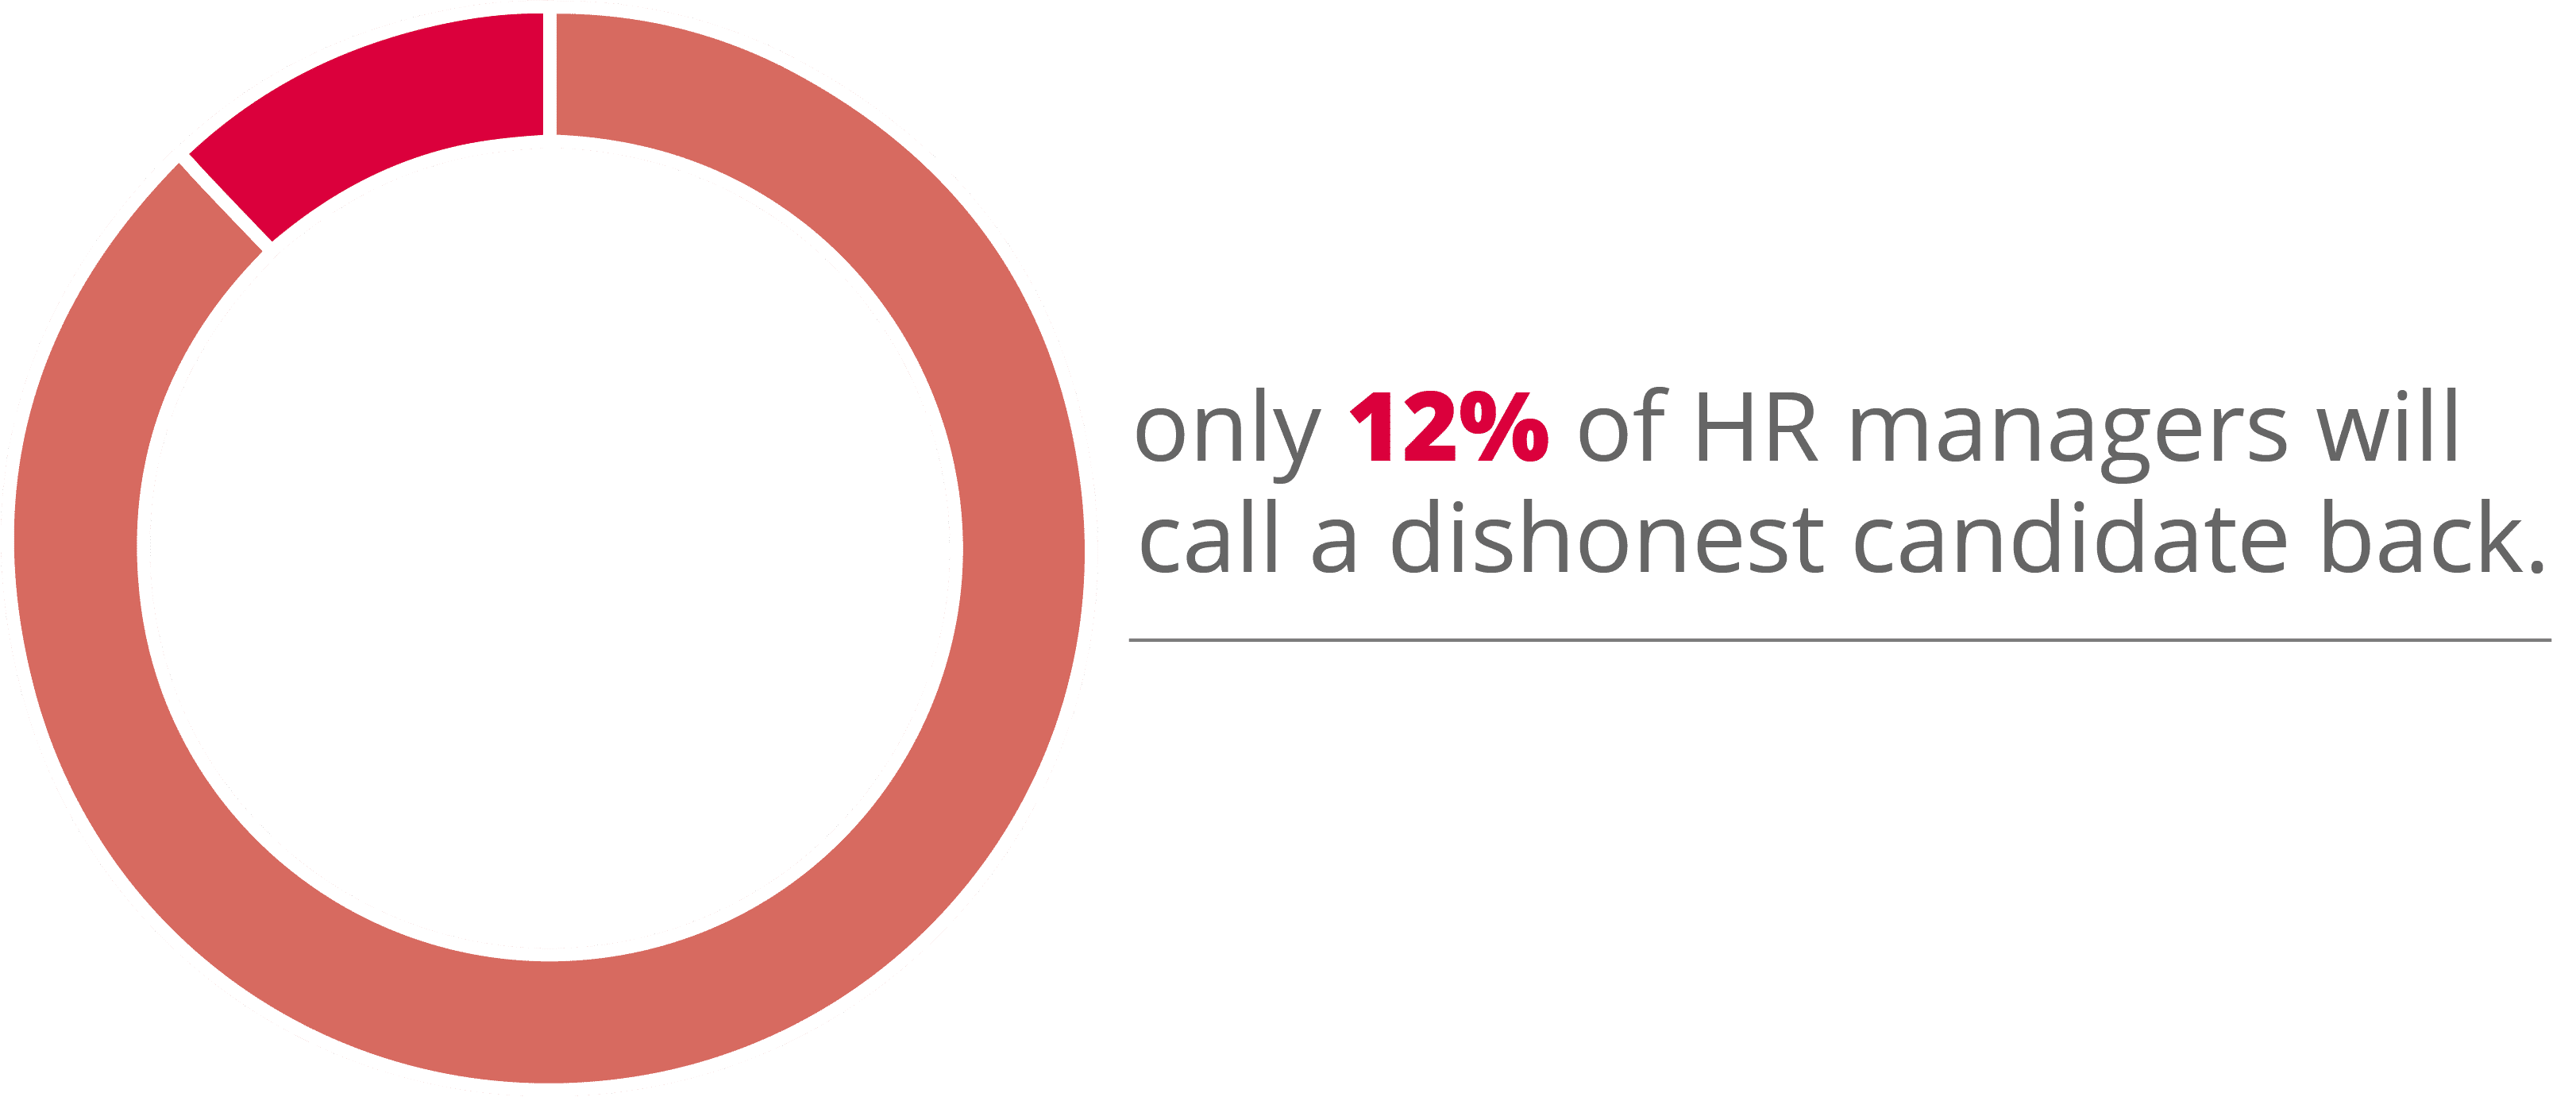 12% of HR managers will call a dishonest candidate back